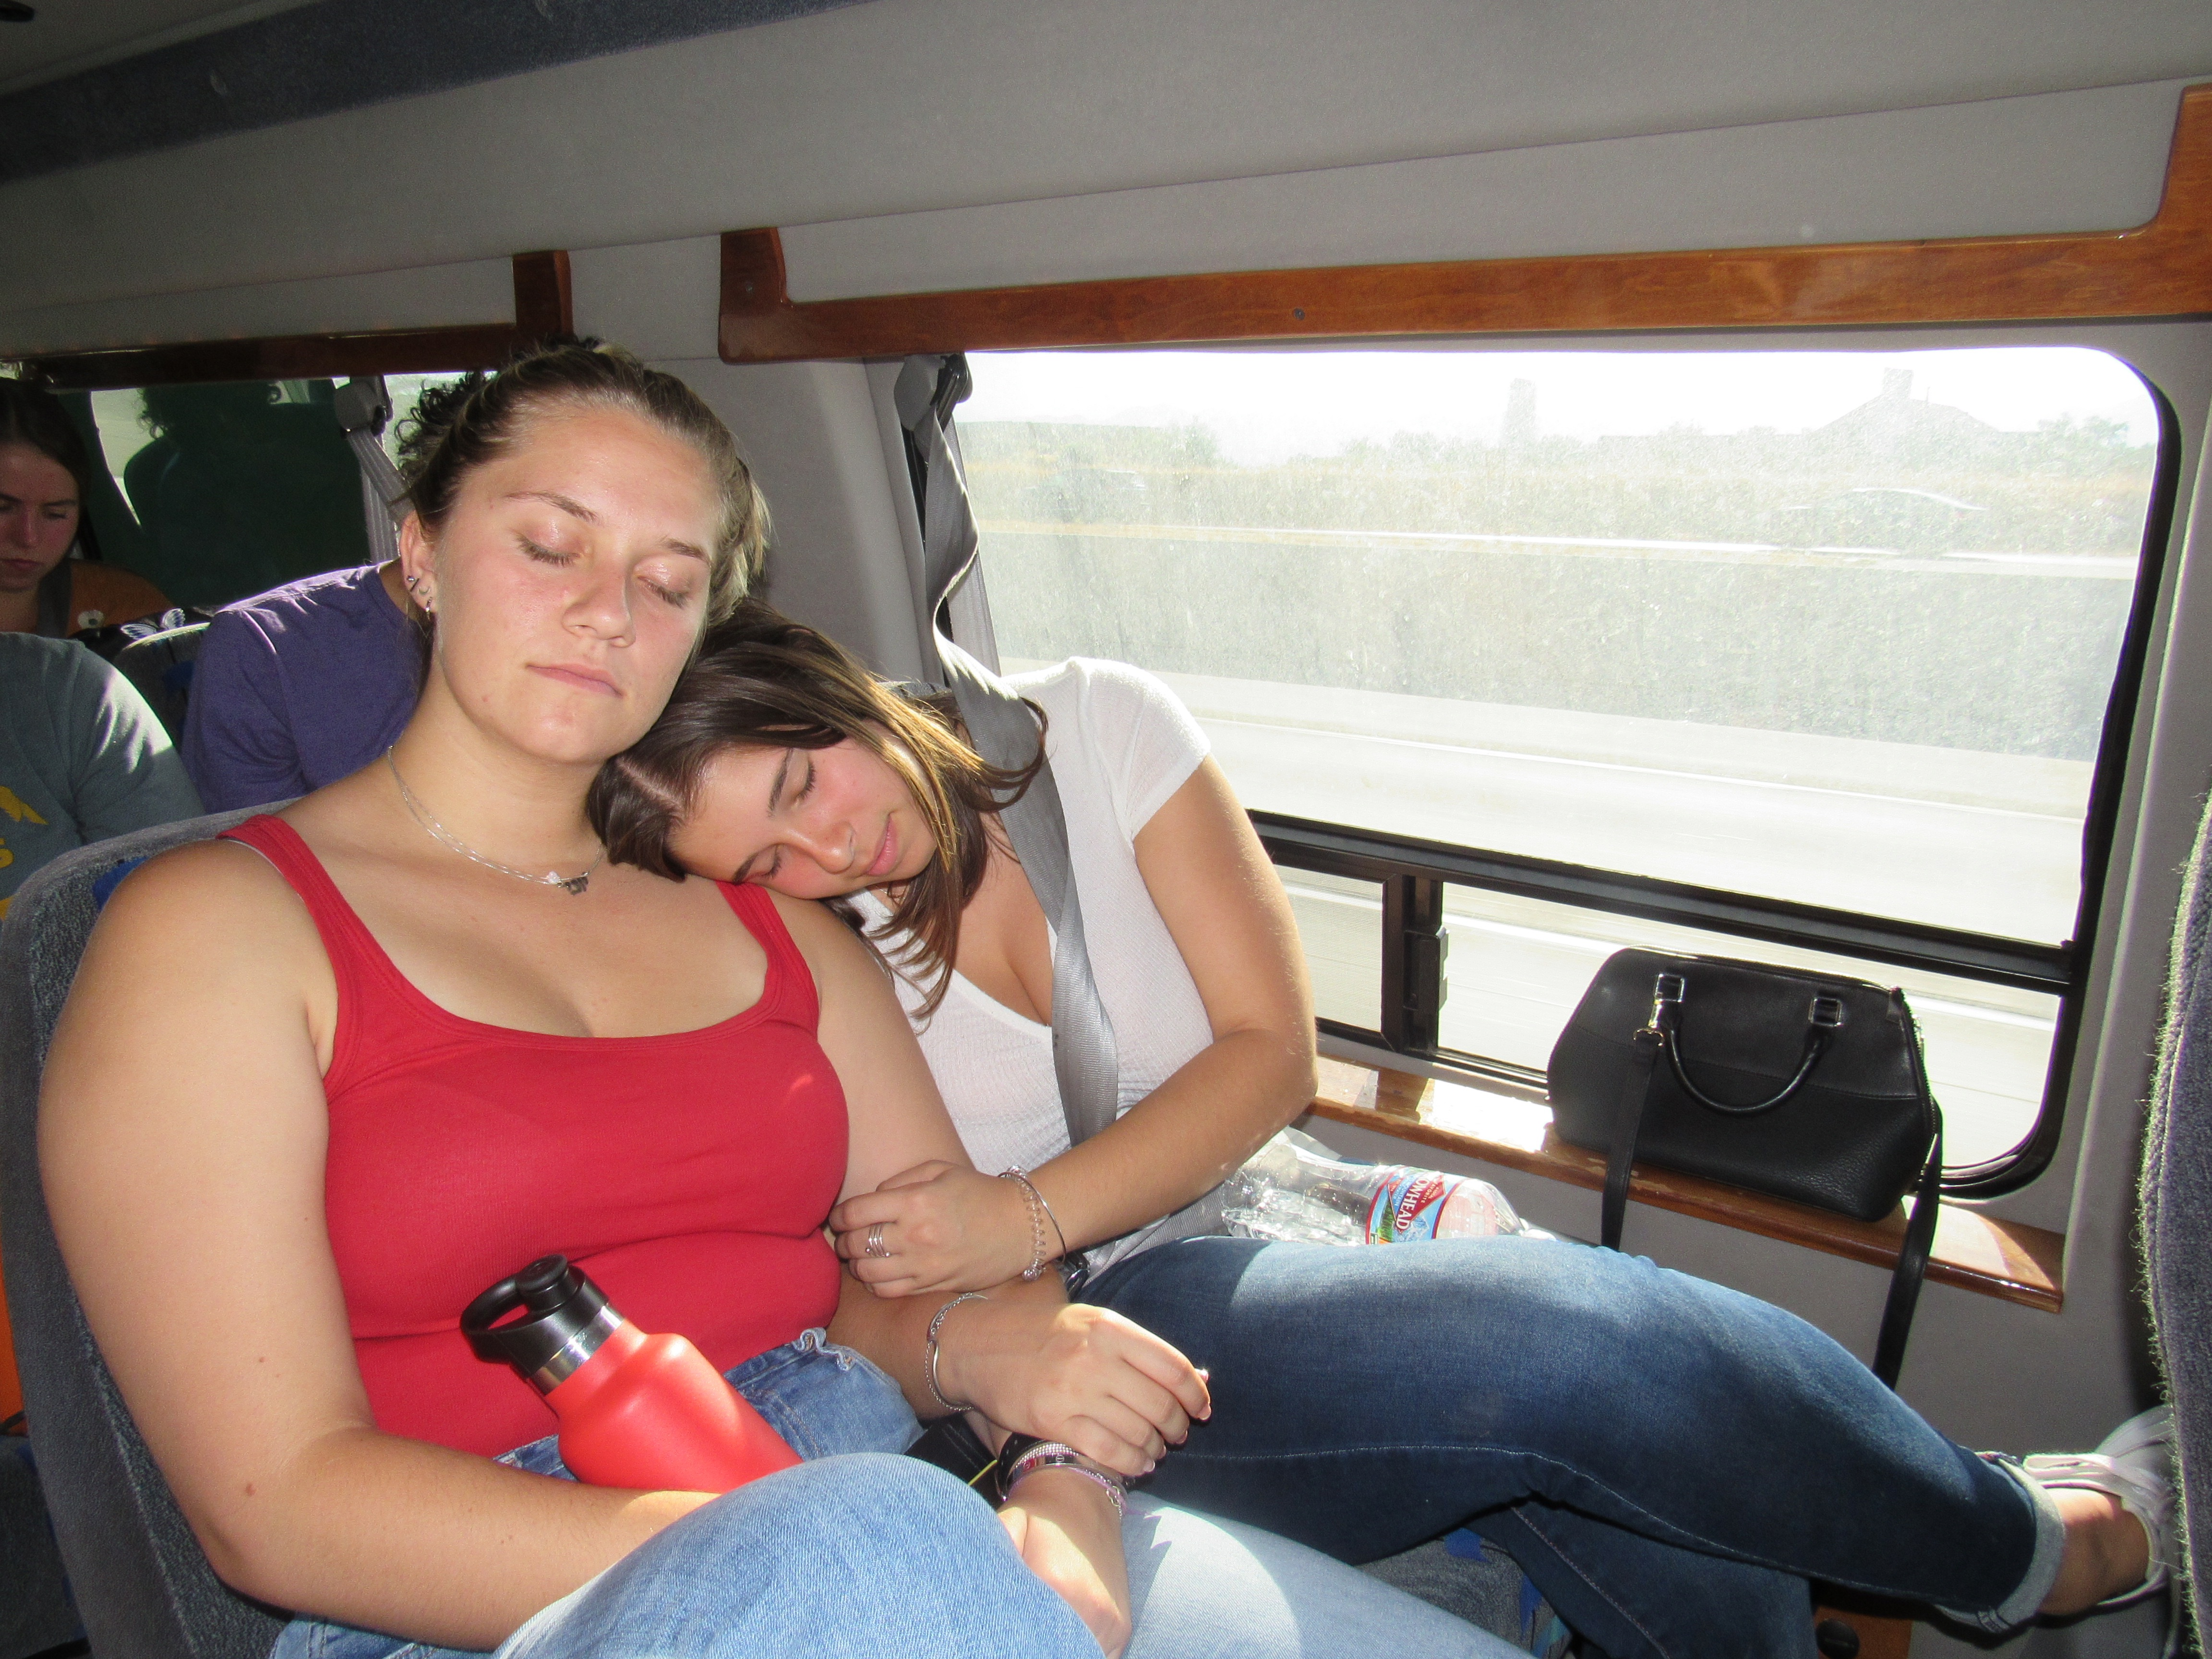 Two girls lean against each other as they sleep on a van.